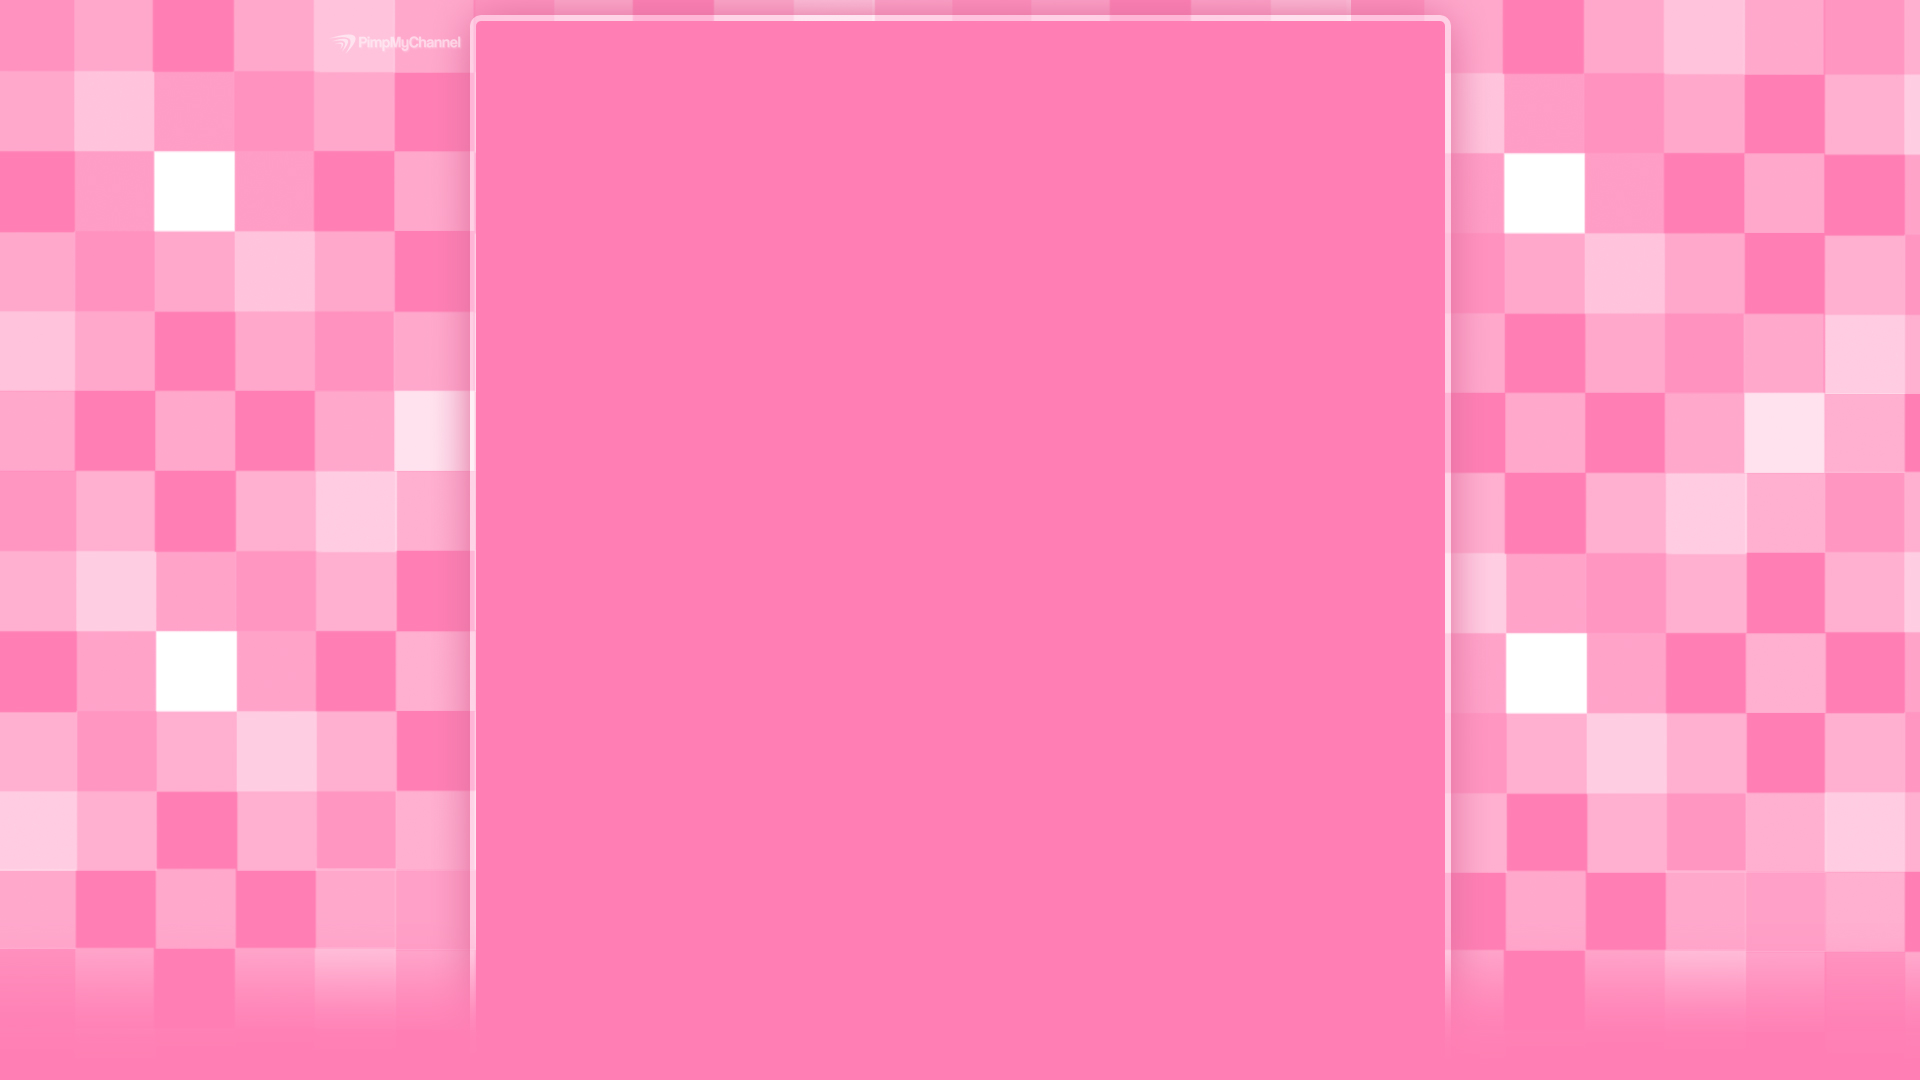 Cute Pink Backgrounds